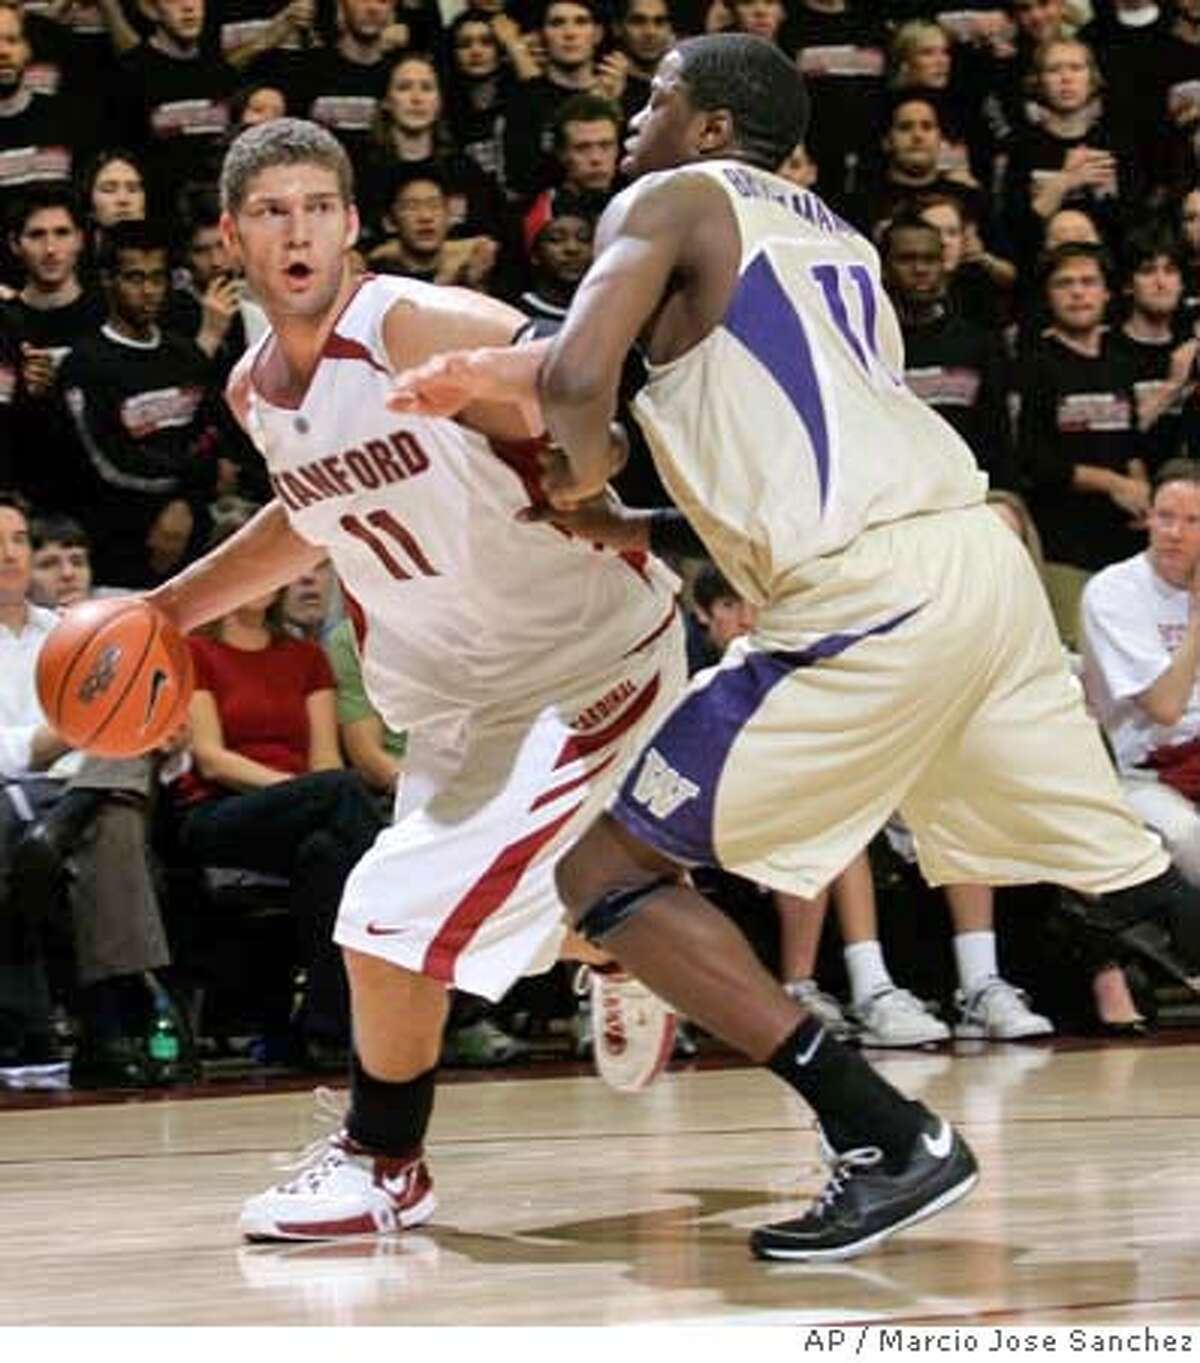 ###Live Caption:Stanford's Brook Lopez, left, is defended by Washington's Matthew Bryan-Amaning in the second half of a college basketball game in Stanford, Calif., Thursday, Feb. 28, 2008. Stanford won 82-79. (AP Photo/Marcio Jose Sanchez)###Caption History:Stanford's Brook Lopez, left, is defended by Washington's Matthew Bryan-Amaning in the second half of a college basketball game in Stanford, Calif., Thursday, Feb. 28, 2008. Stanford won 82-79. (AP Photo/Marcio Jose Sanchez)###Notes:Brook Lopez, Mathew Bryan-Amaning###Special Instructions:EFE OUT